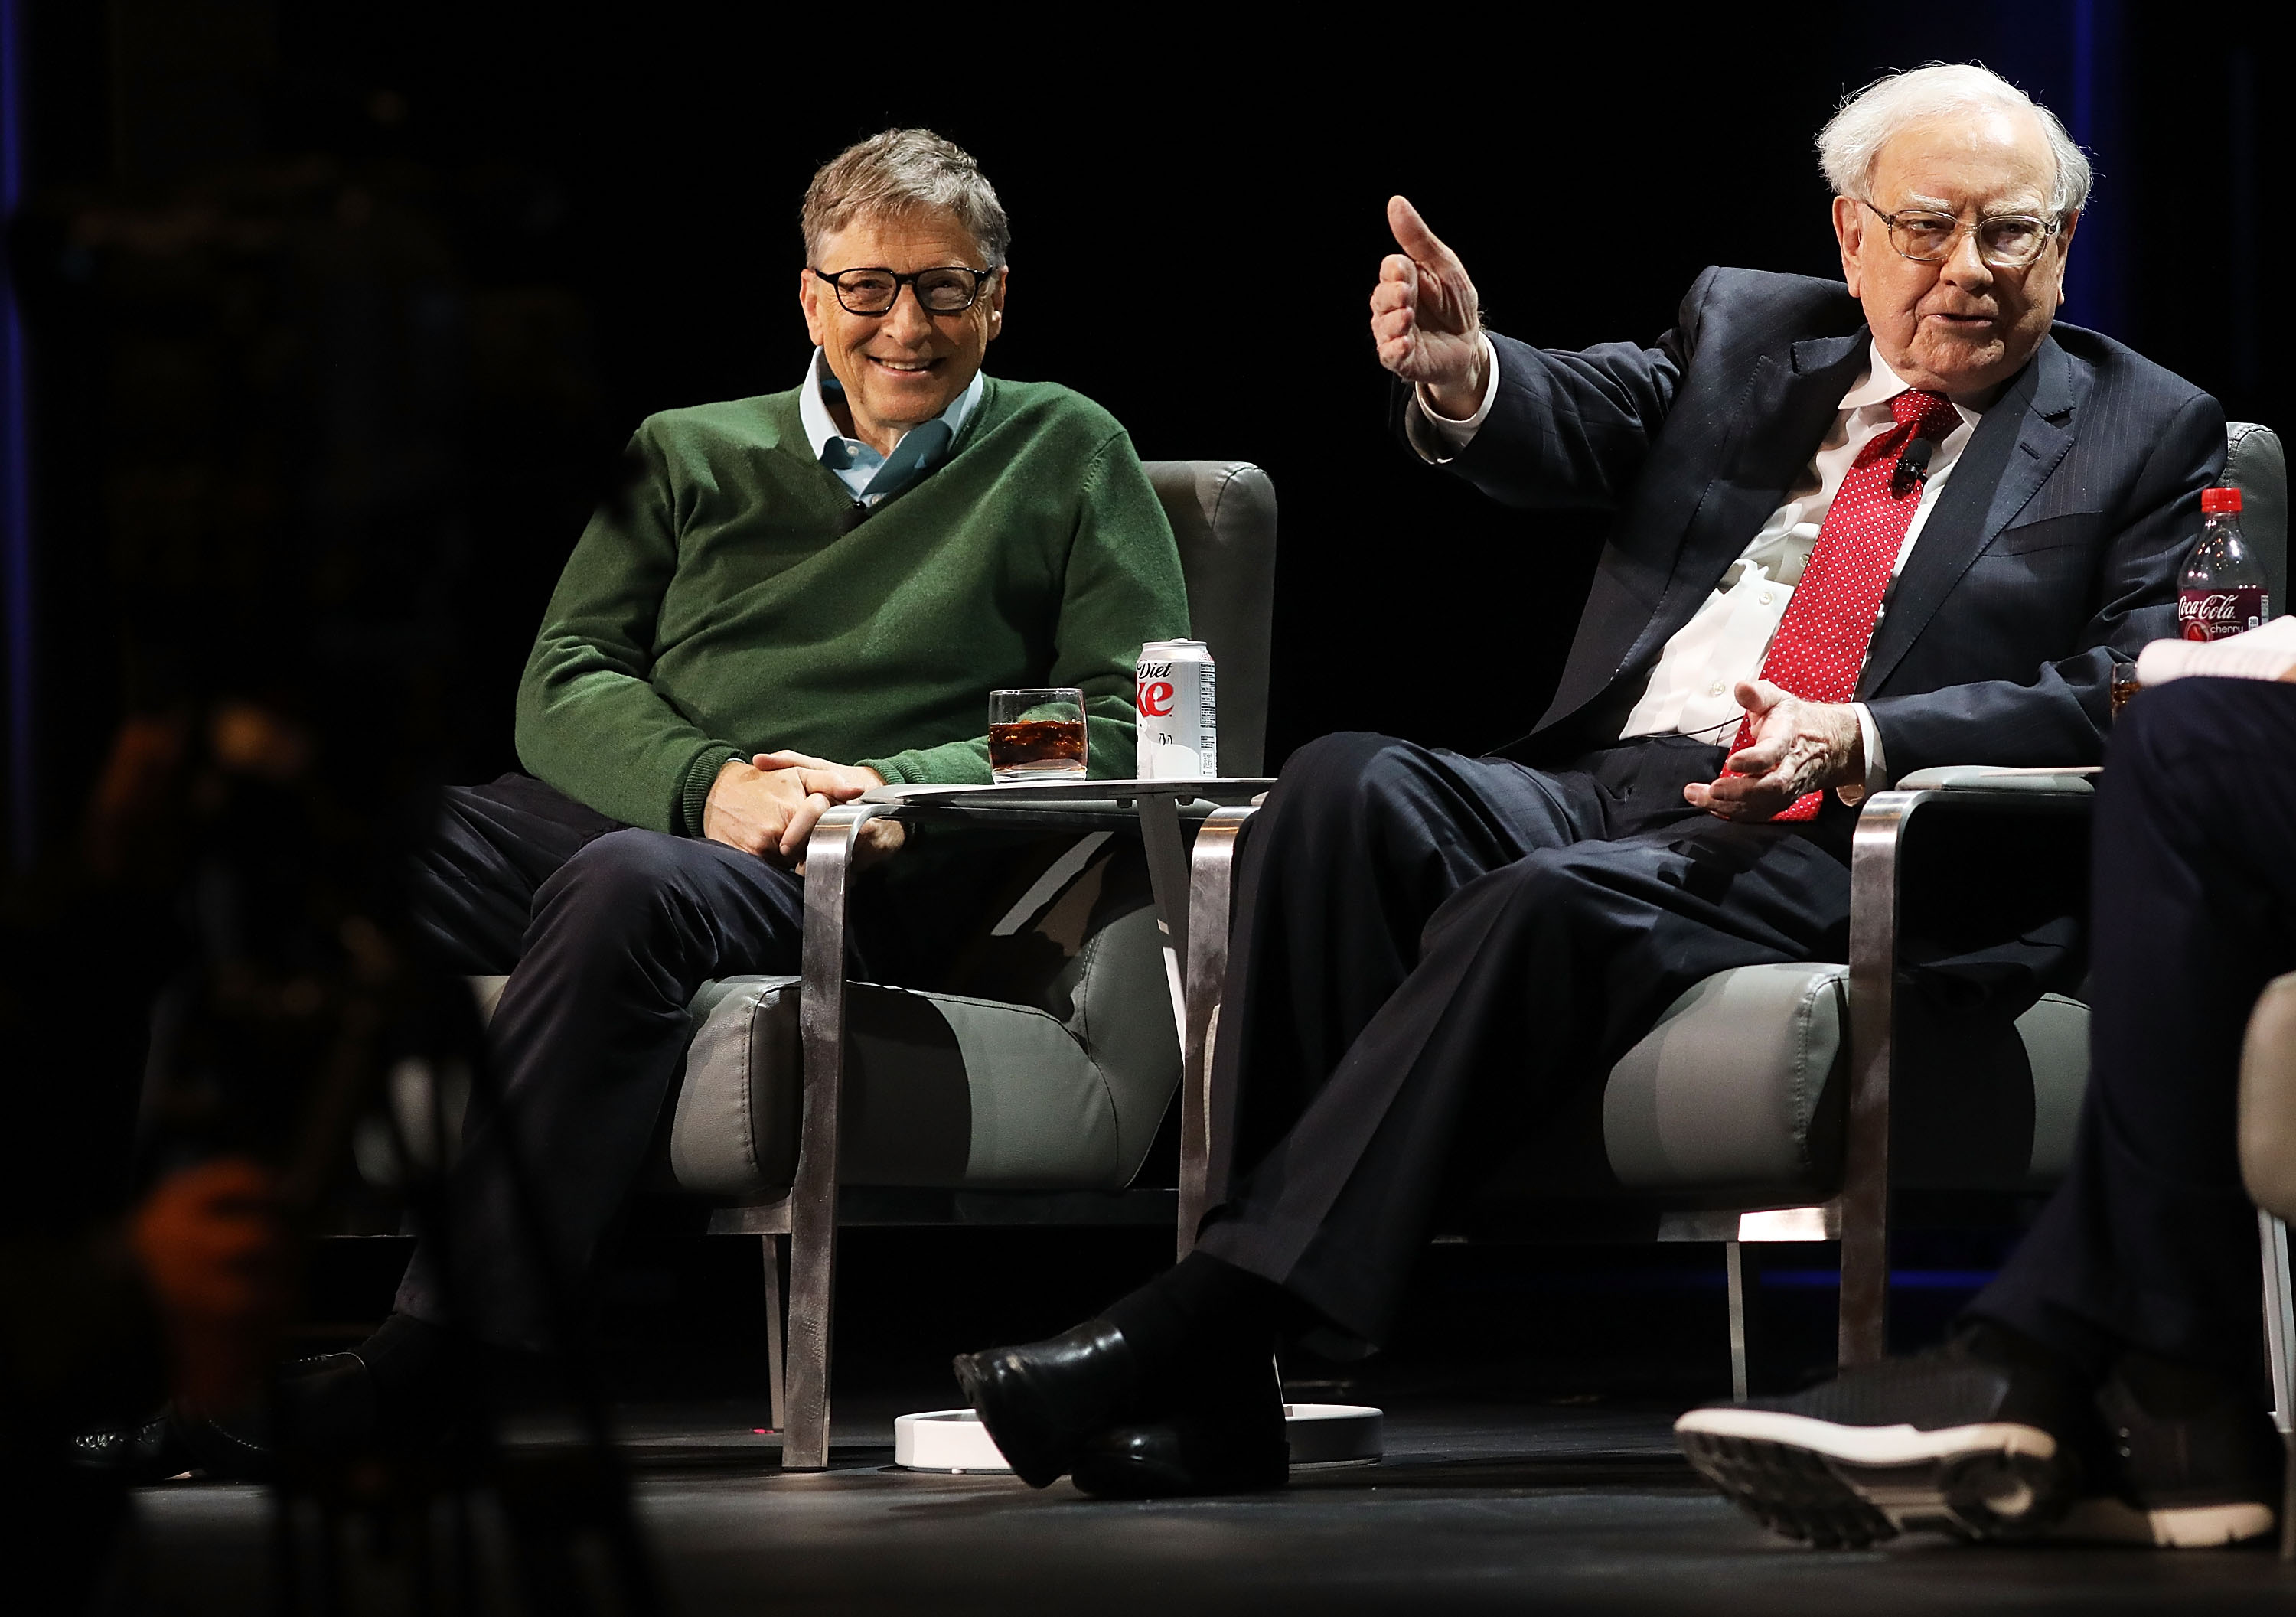 Bill Gates seated next to Warren Buffett onstage at a conference.